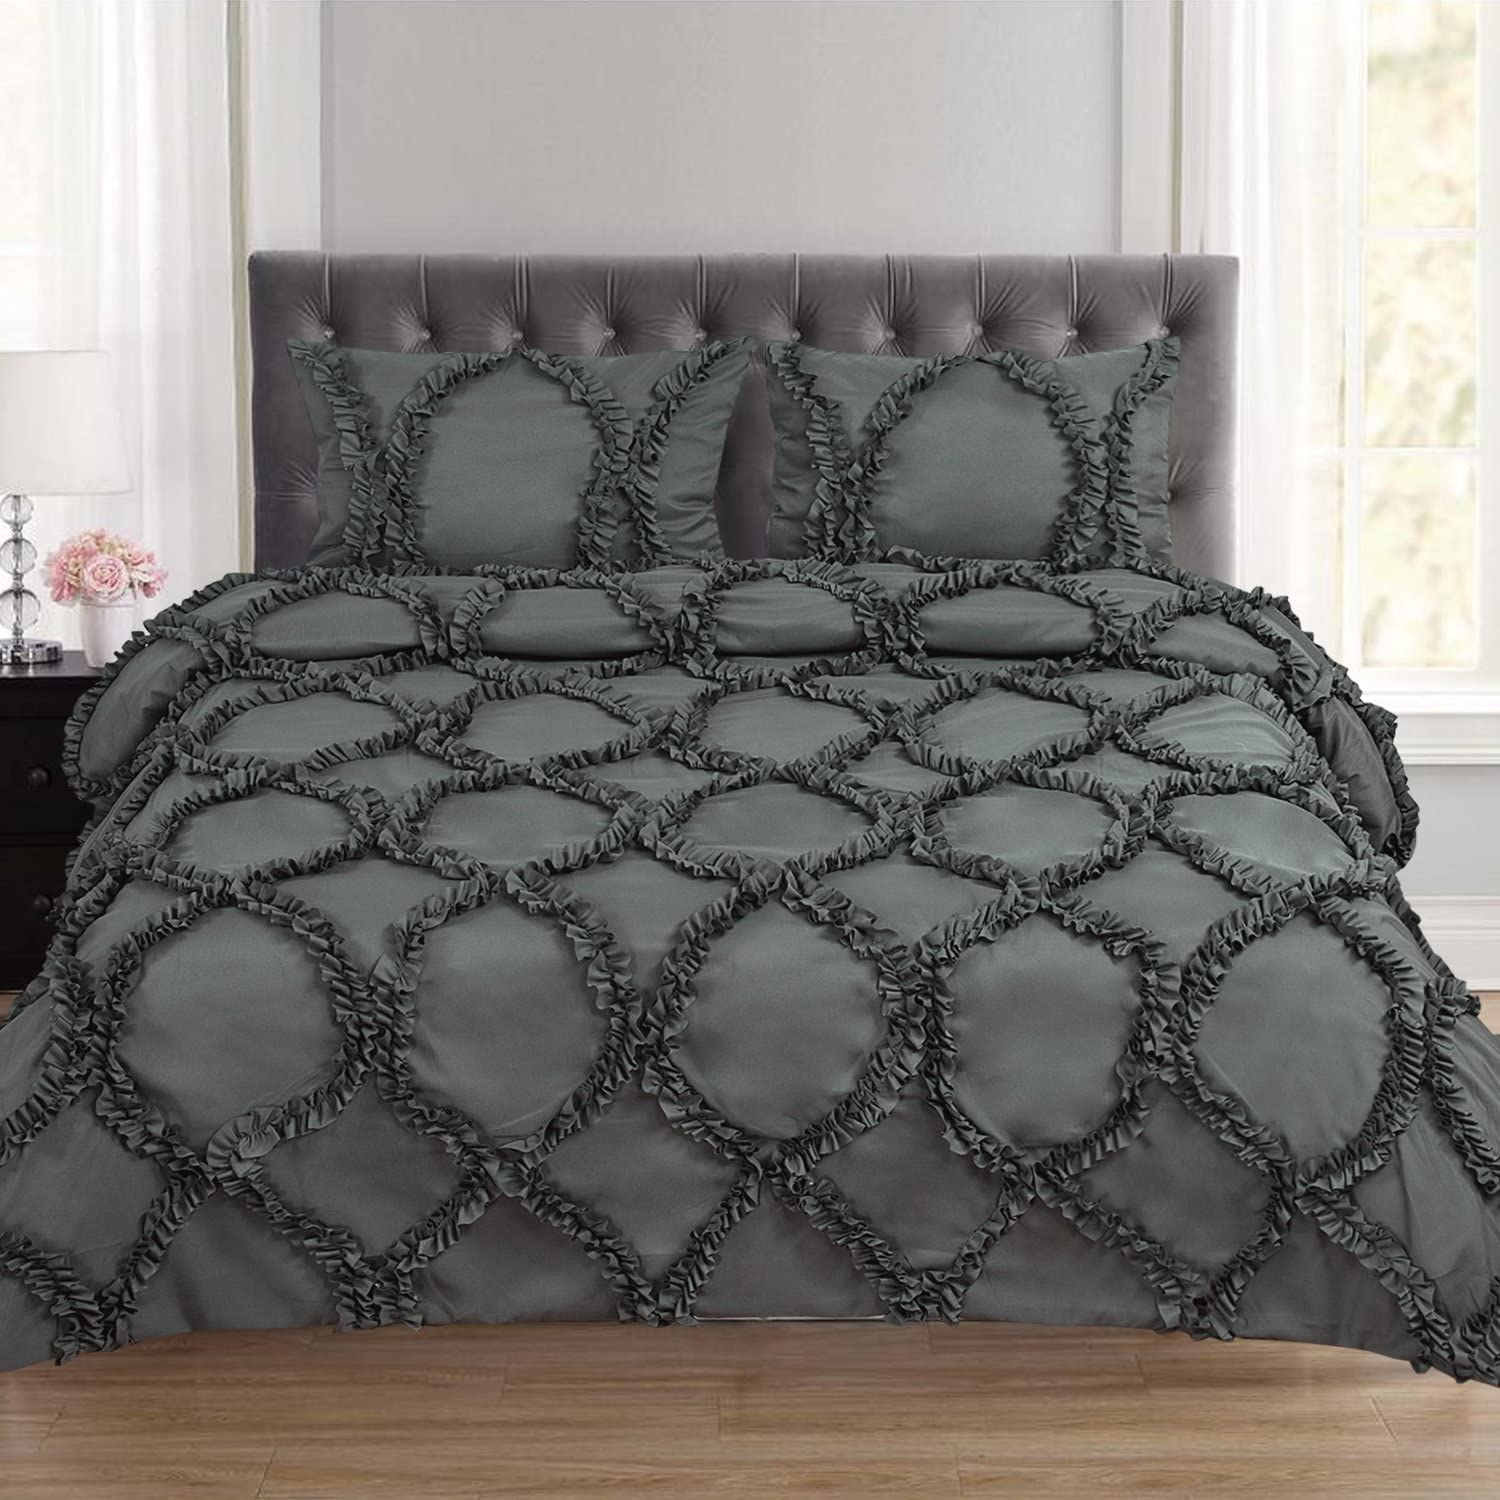 Sweet Home Collection 3 Piece Tatiana Fancy Duvet Cover Set with Pillow Shams, Full/Queen, Gray